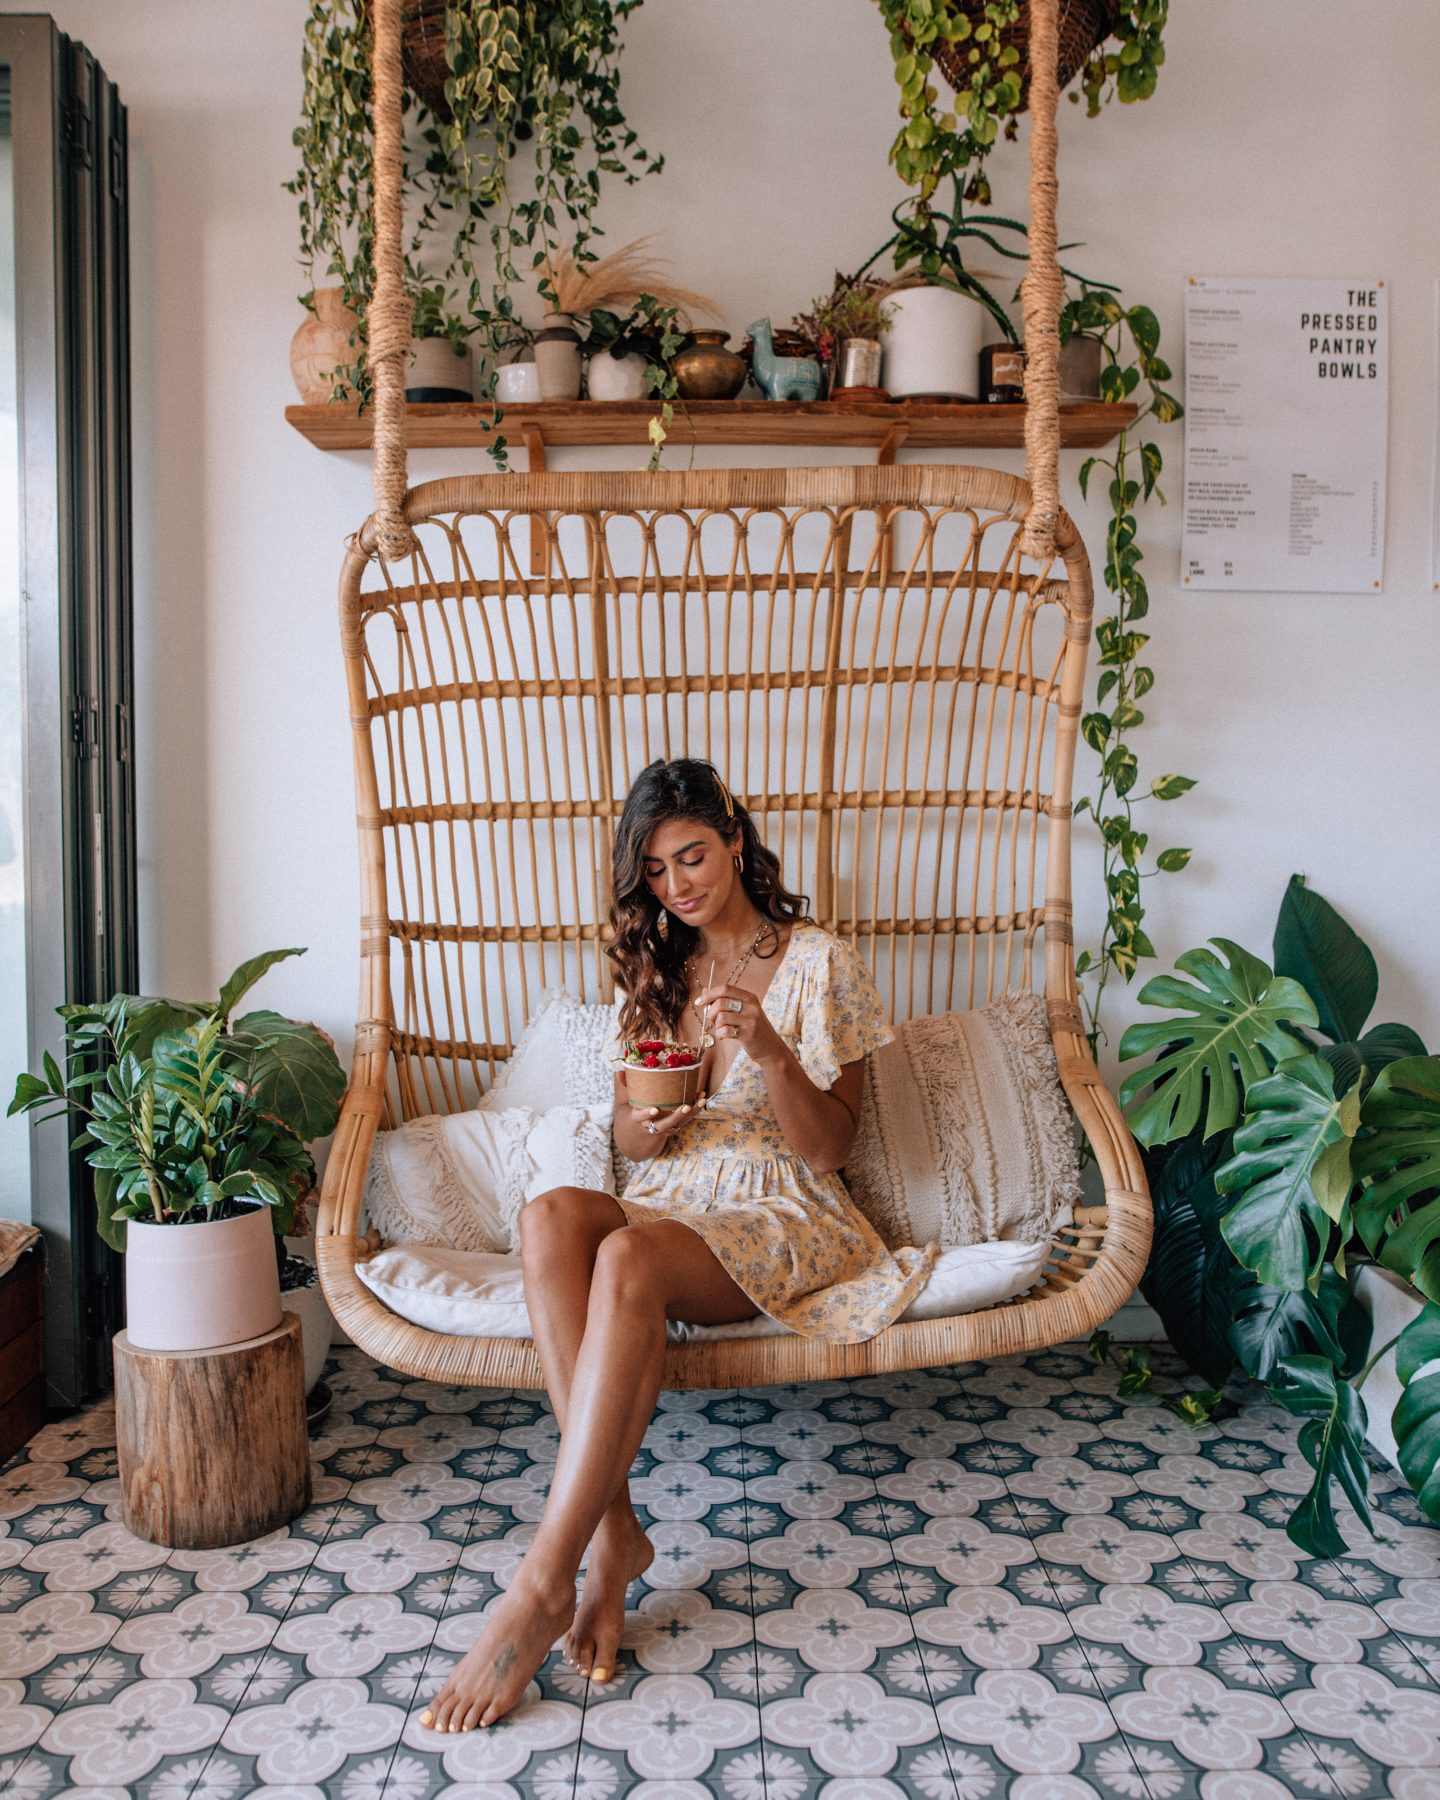 Woman eating at Pressed Pantry, a cafe in Byron Bay Australia